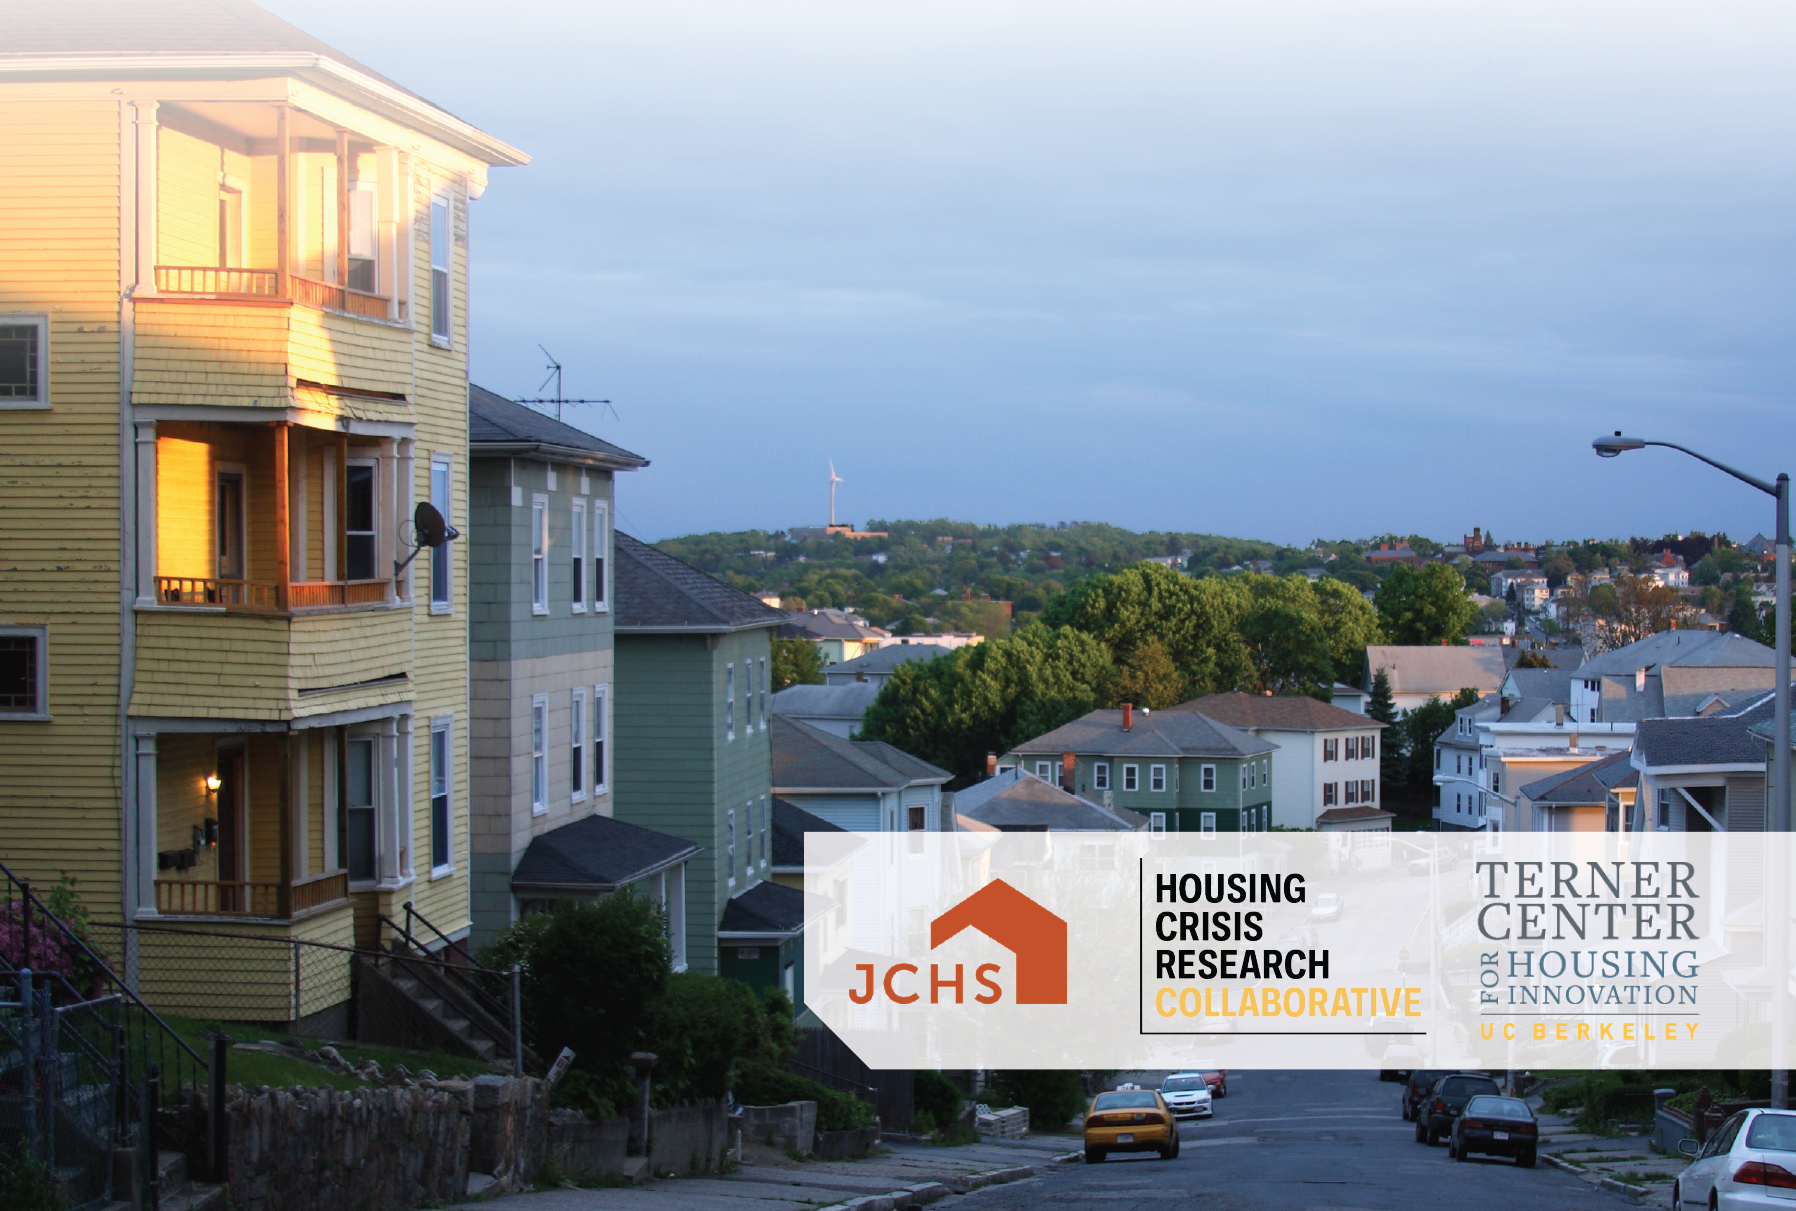 Cover image, JCHS, Housing Crisis Research Collaborative, Terner Center logos